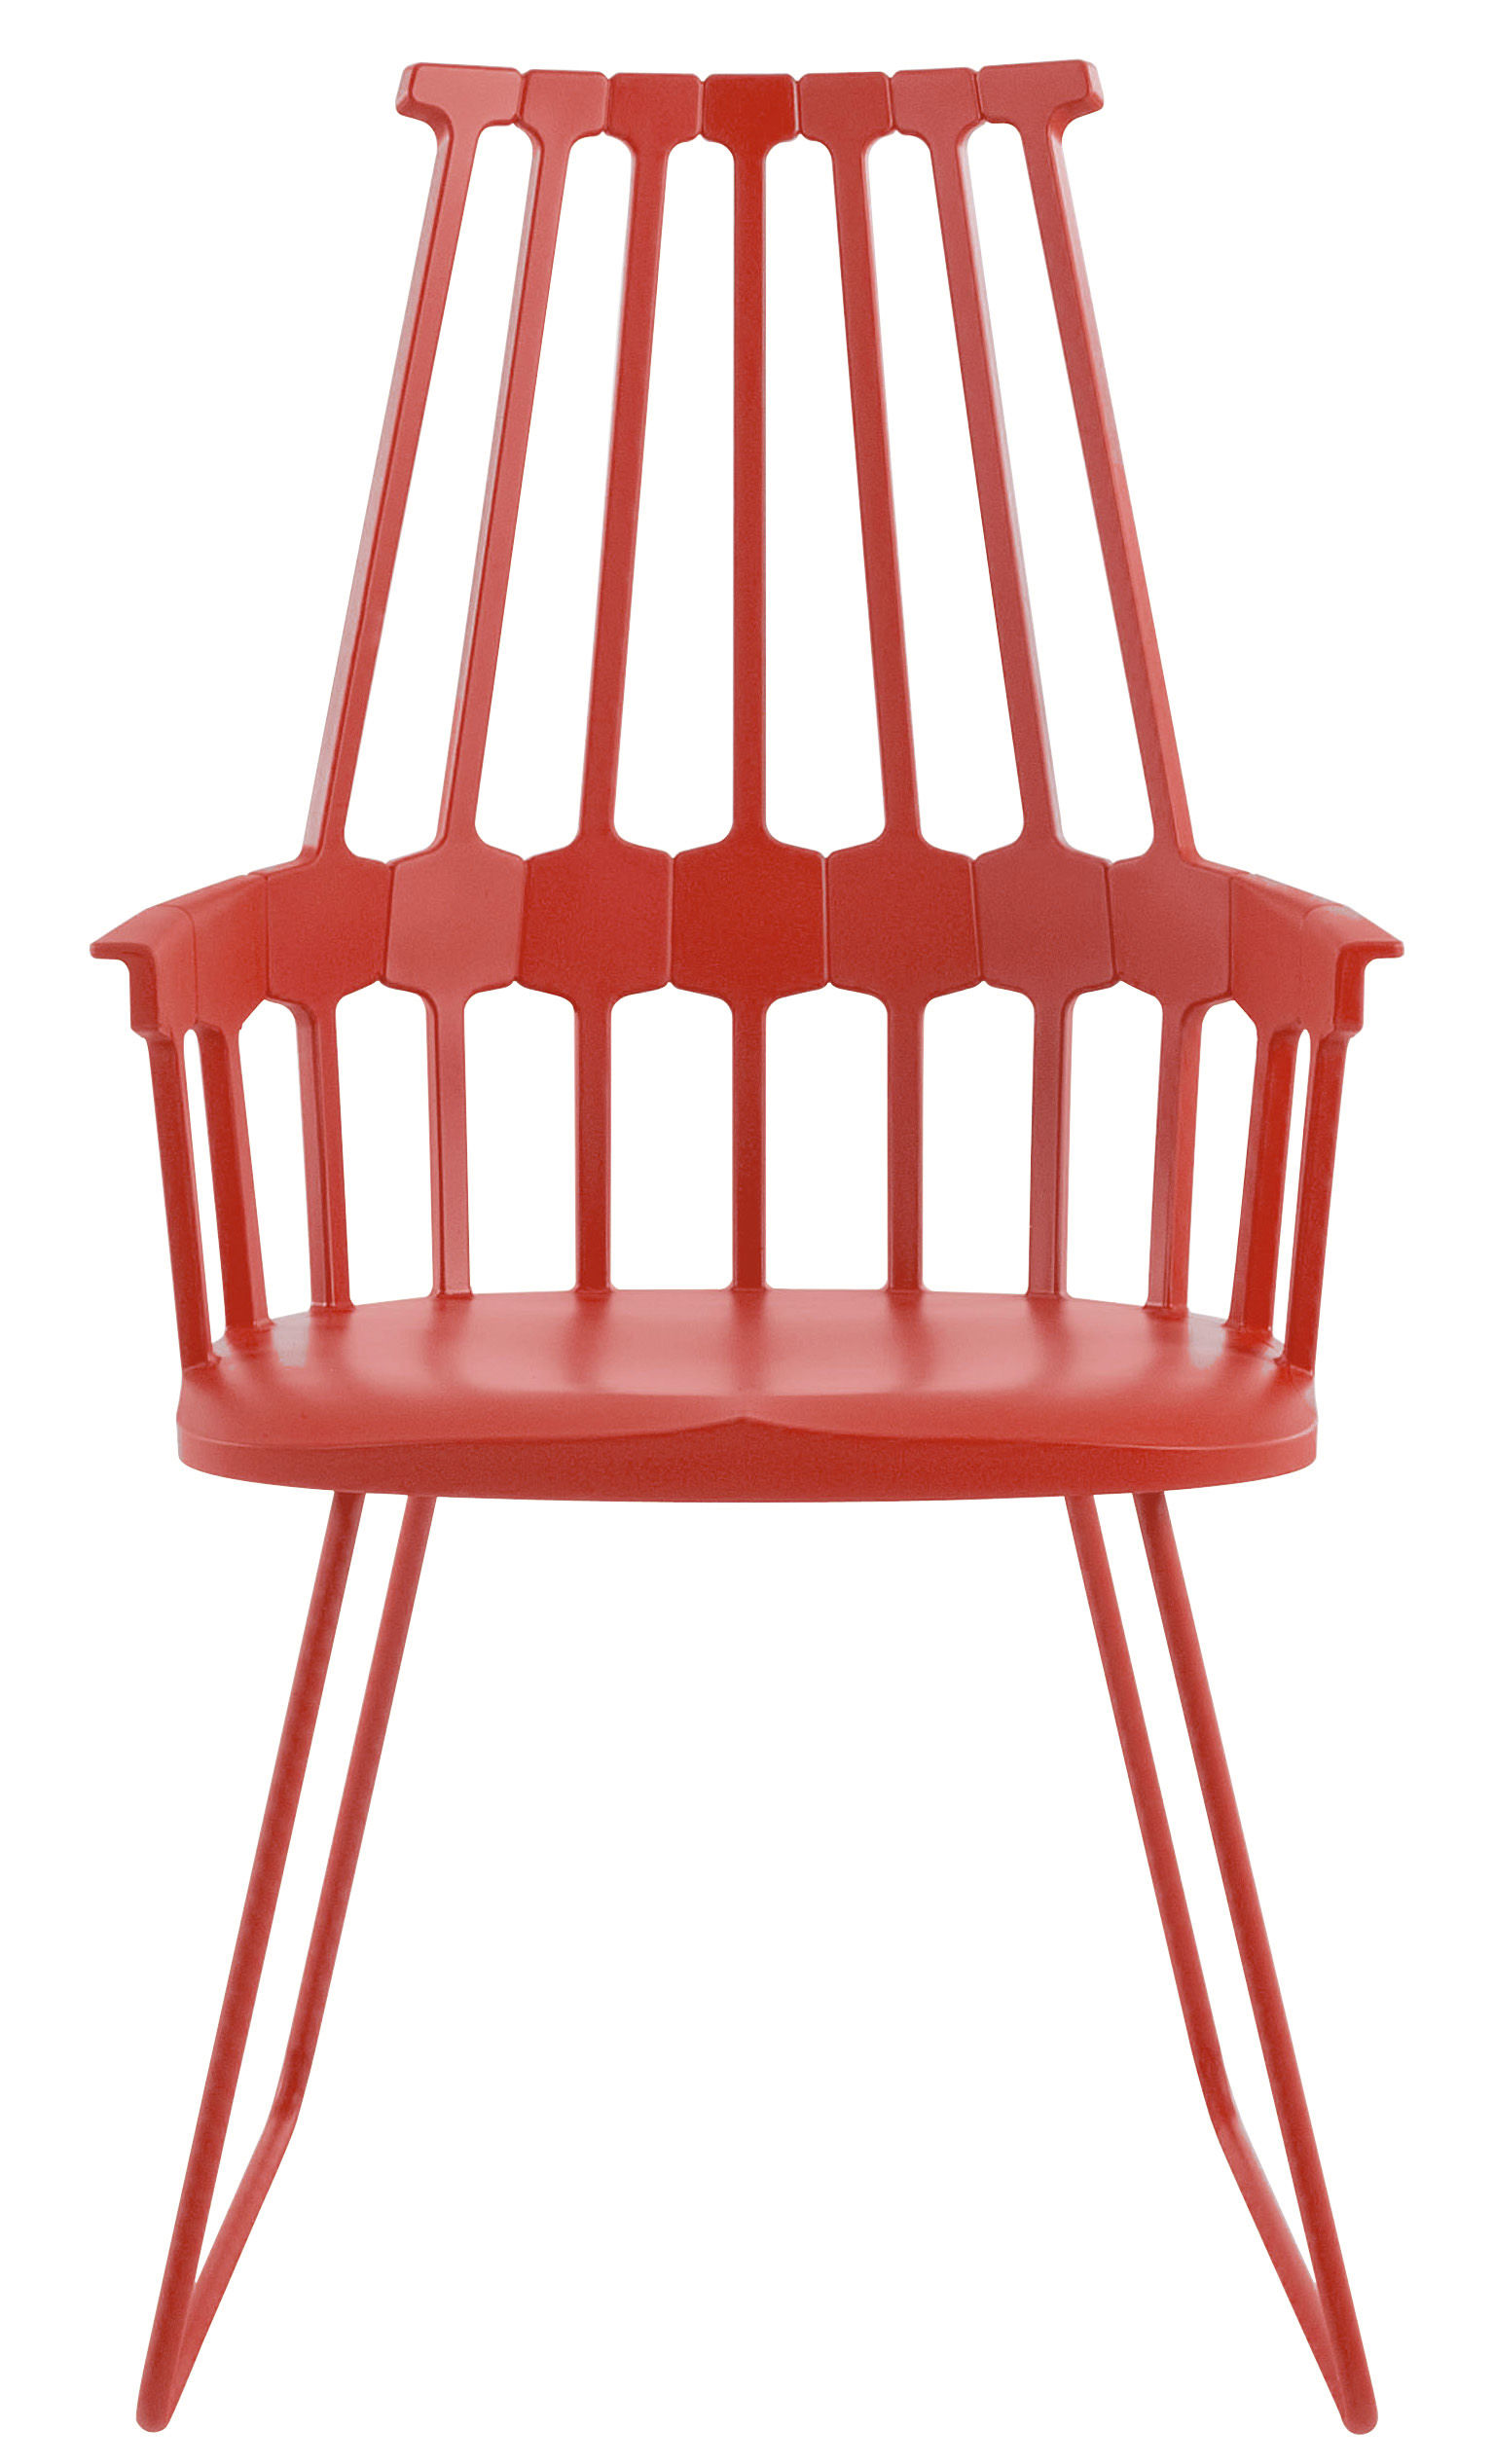 Furniture - Comback Armchair - Polycarbonate & metal sledge leg by Kartell - Red - Polycarbonate, Steel